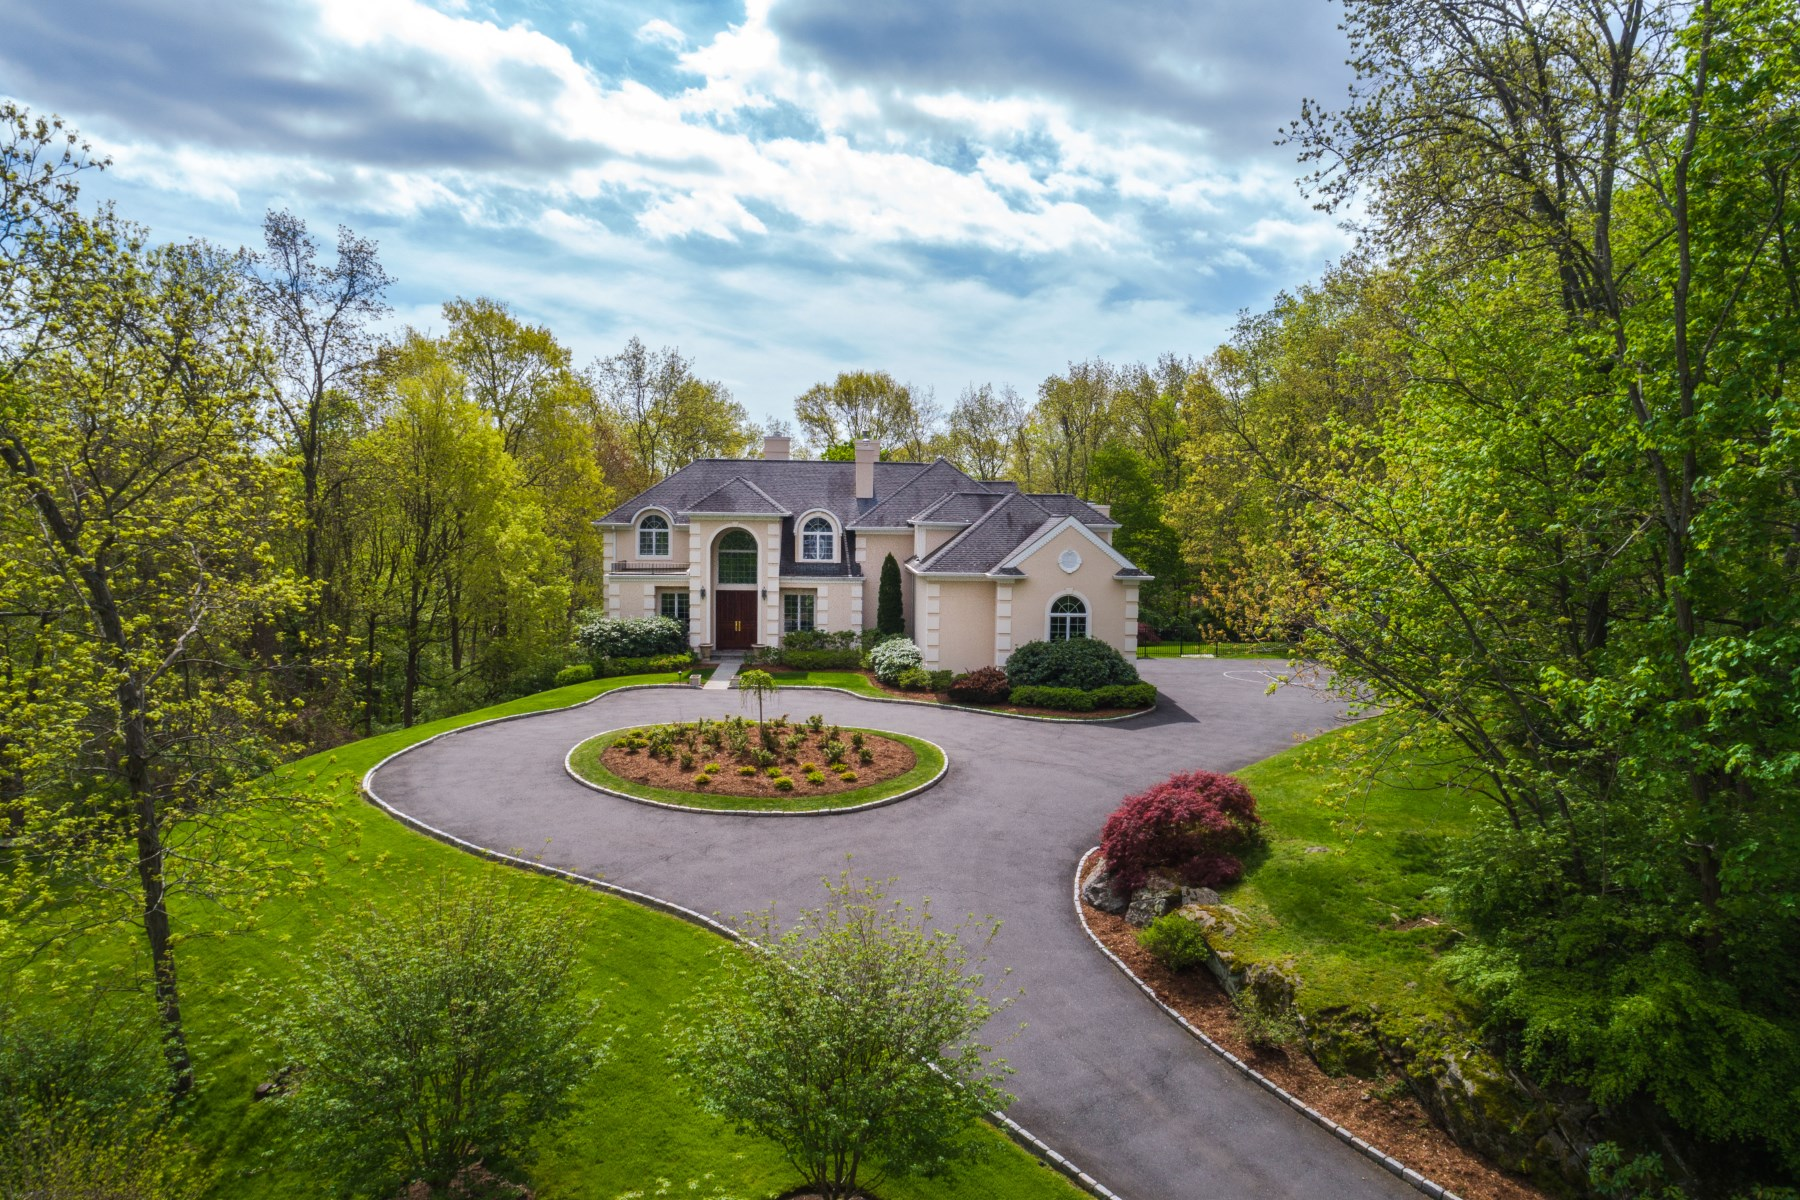 Single Family Home for Sale at 5 Blanchard Road Greenwich, Connecticut, 06831 United States